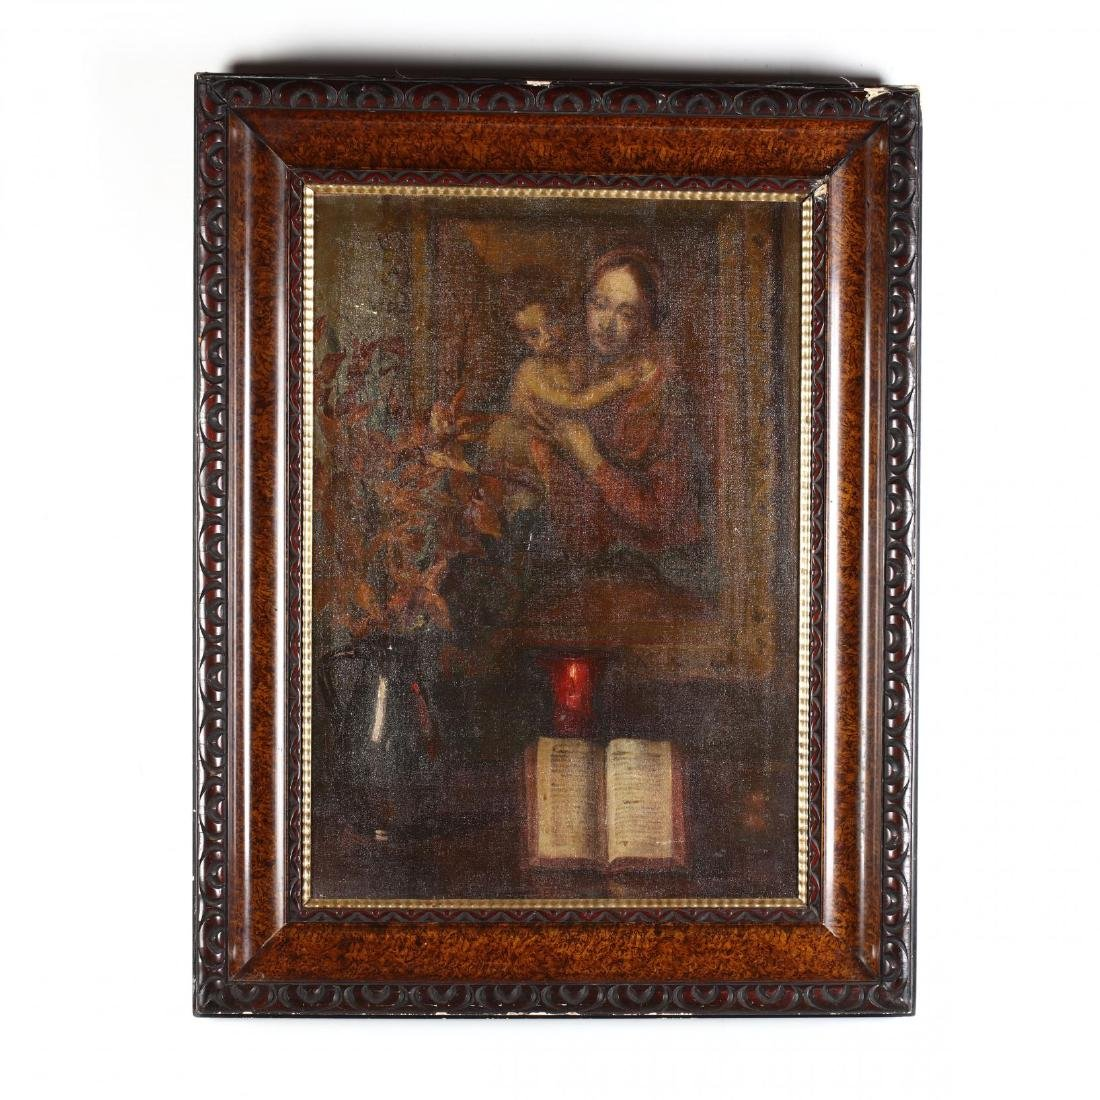 An Antique Painting of an Interior with Shrine